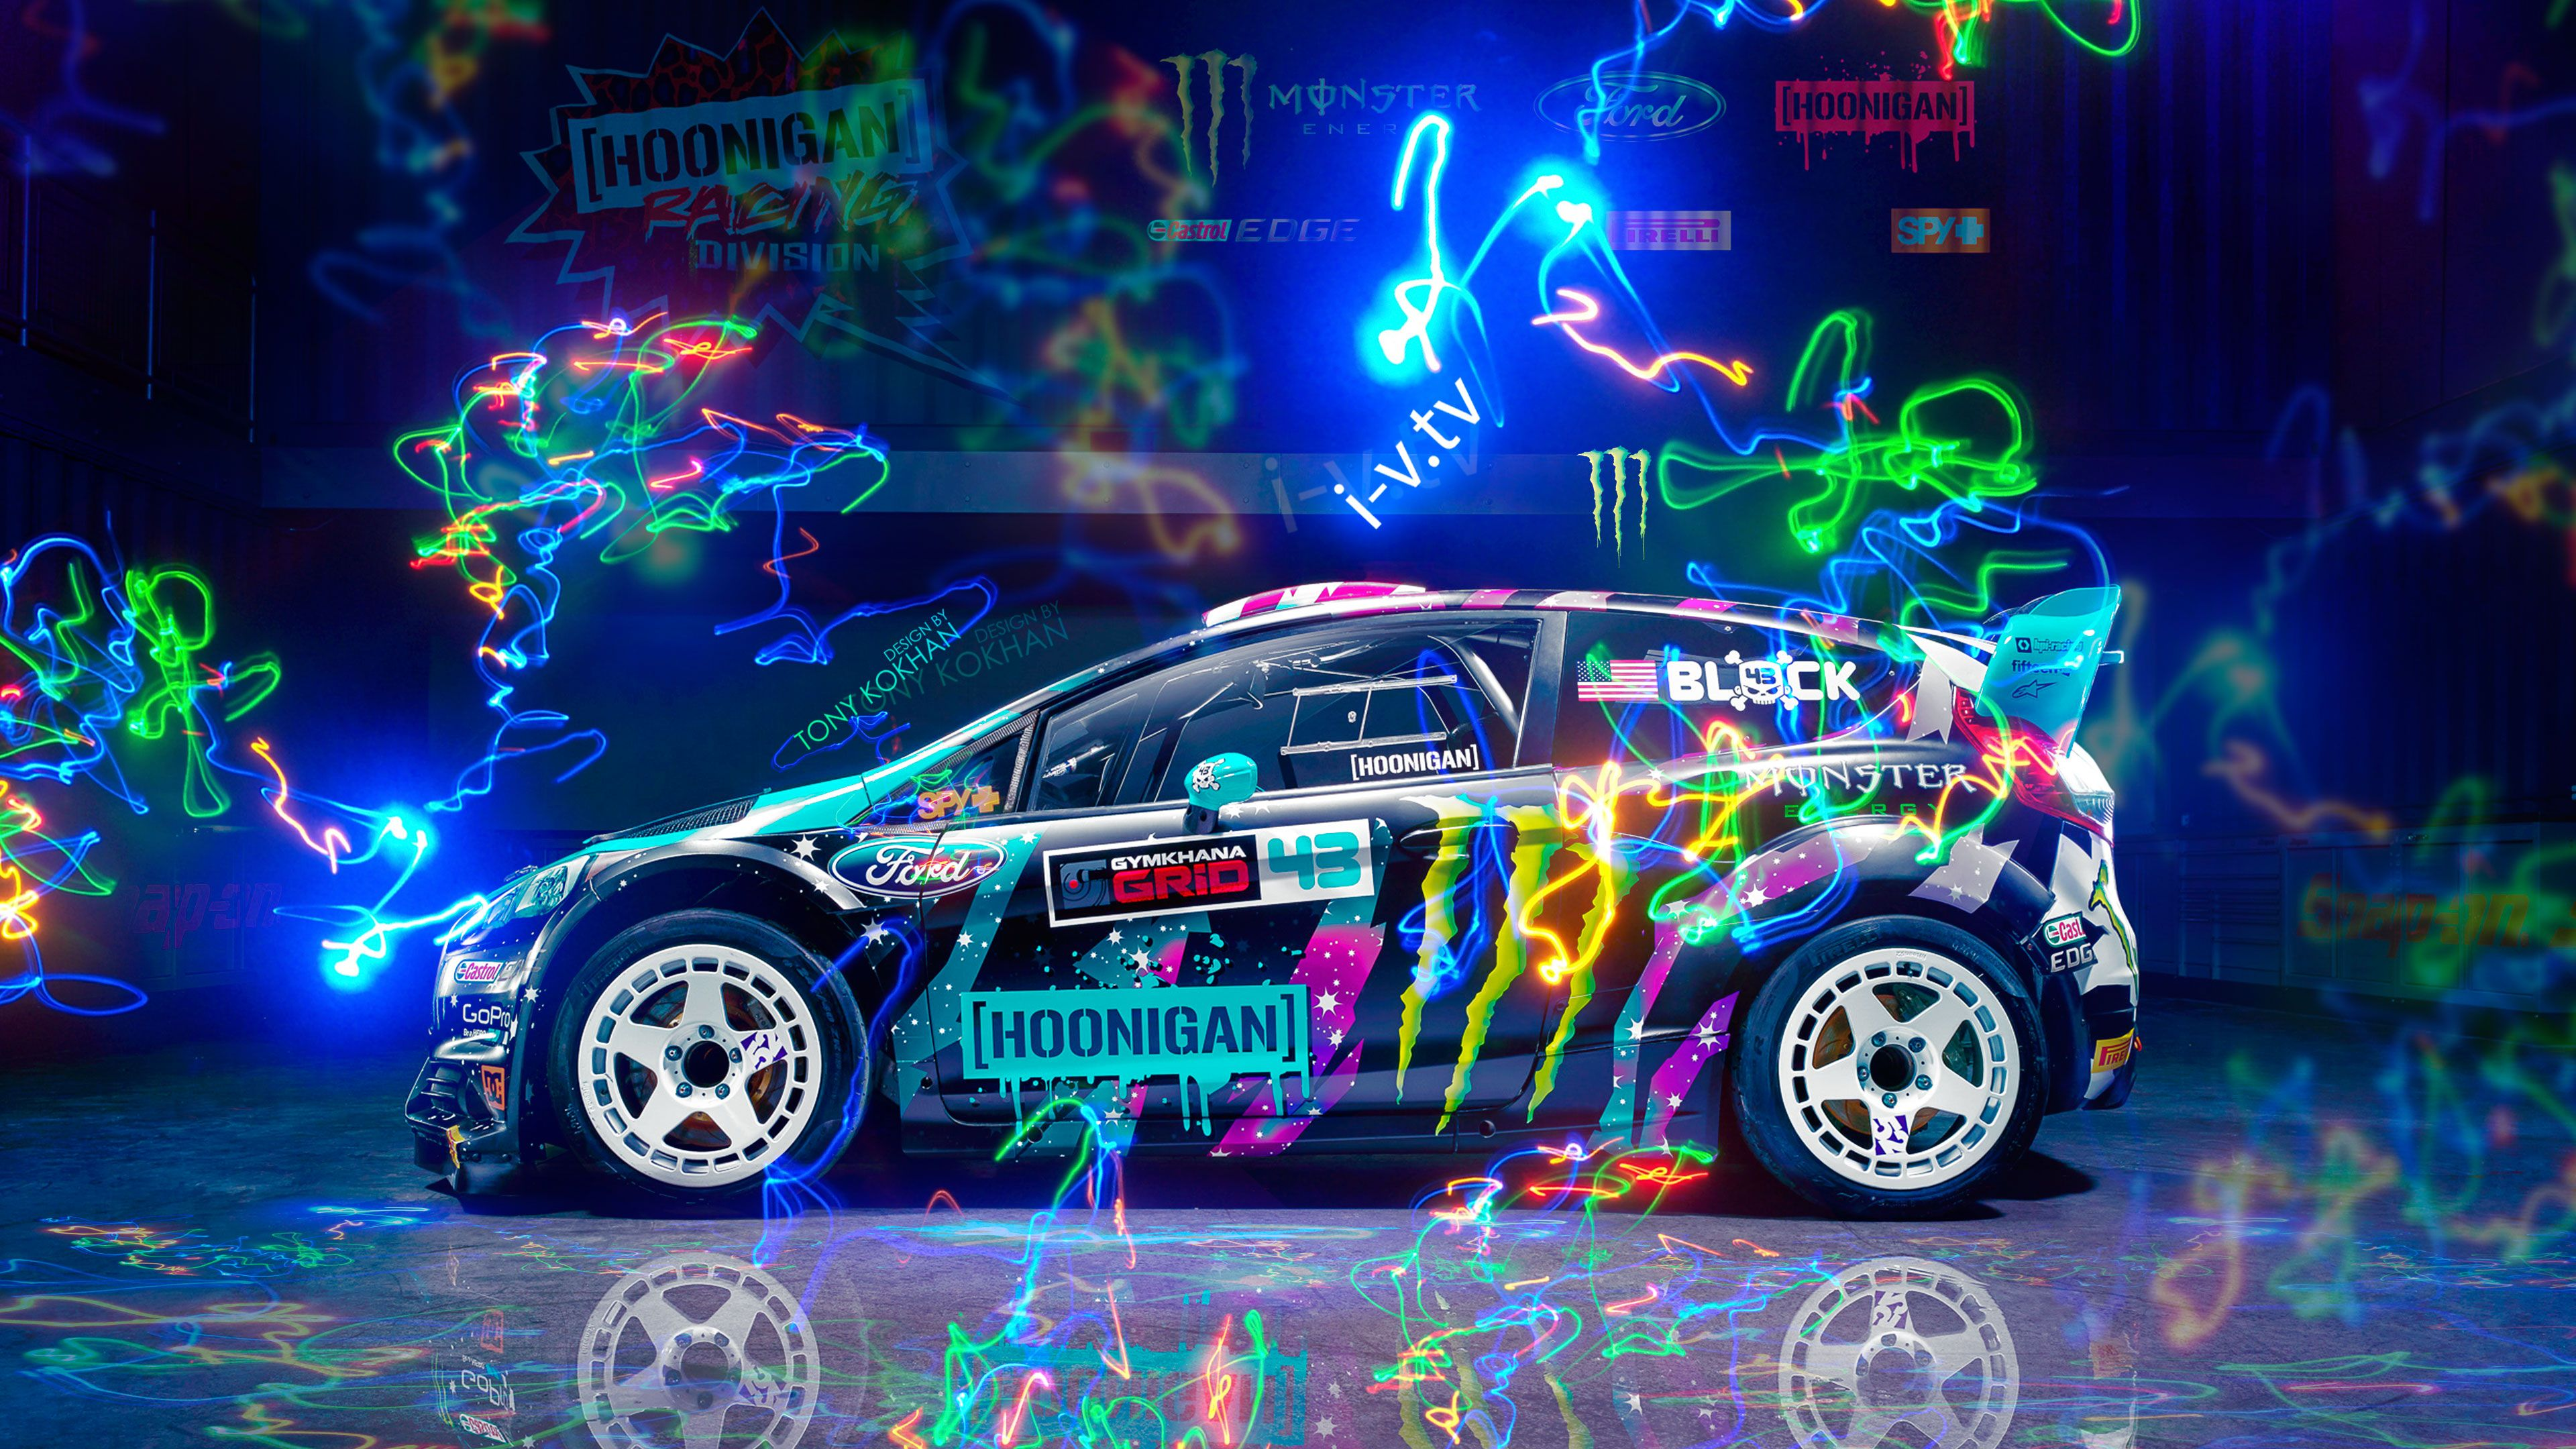 Ford Fiesta St Rx43 Hoonigan Car Hd Movies 4k Wallpapers Images Backgrounds Photos And Pictures